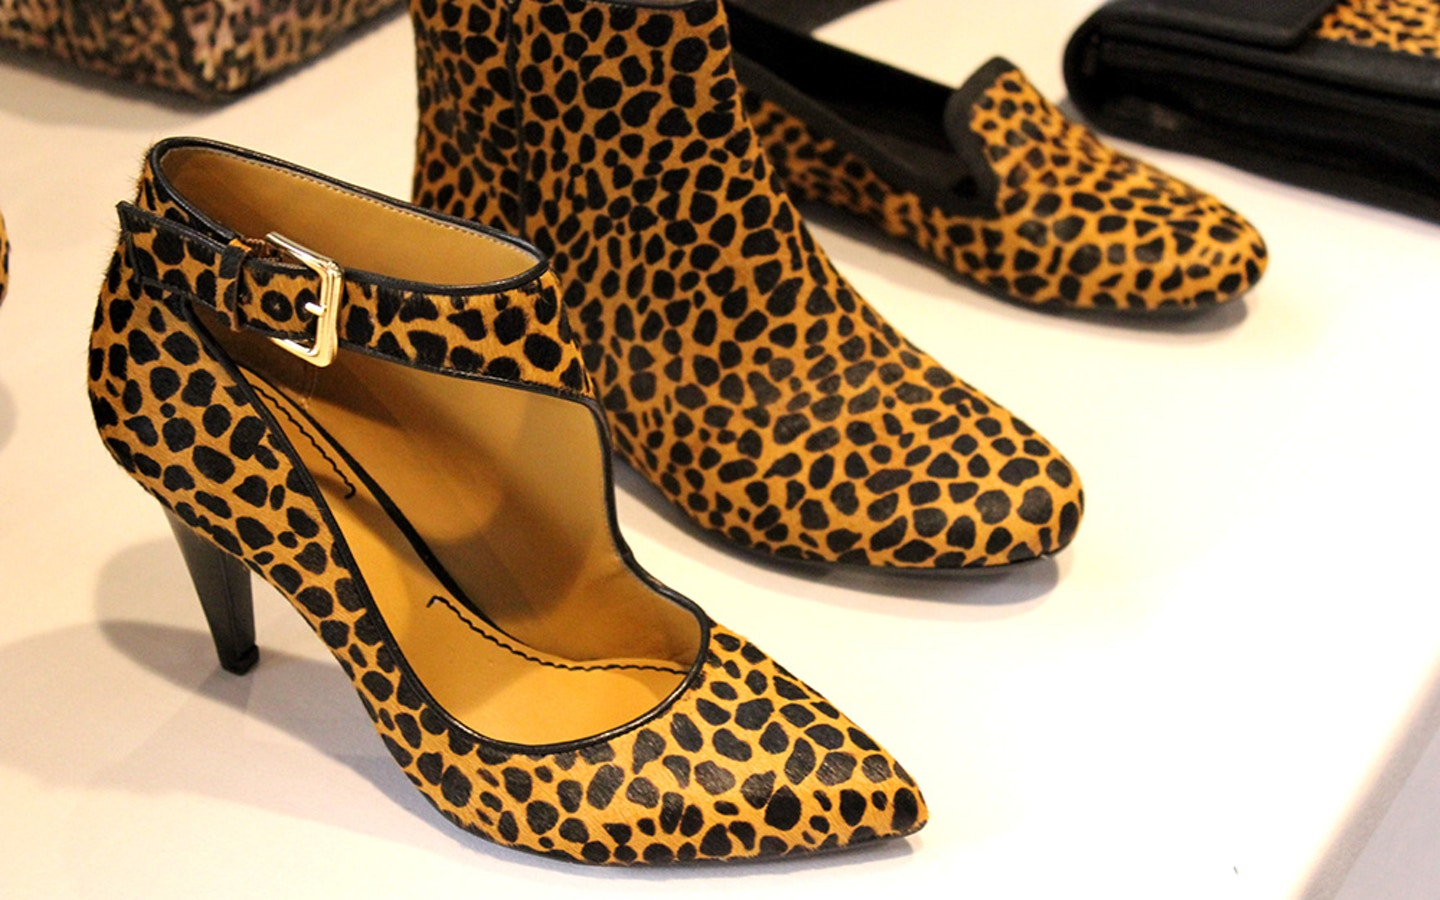 Nine West Fall 2013 Shoe Collection Preview